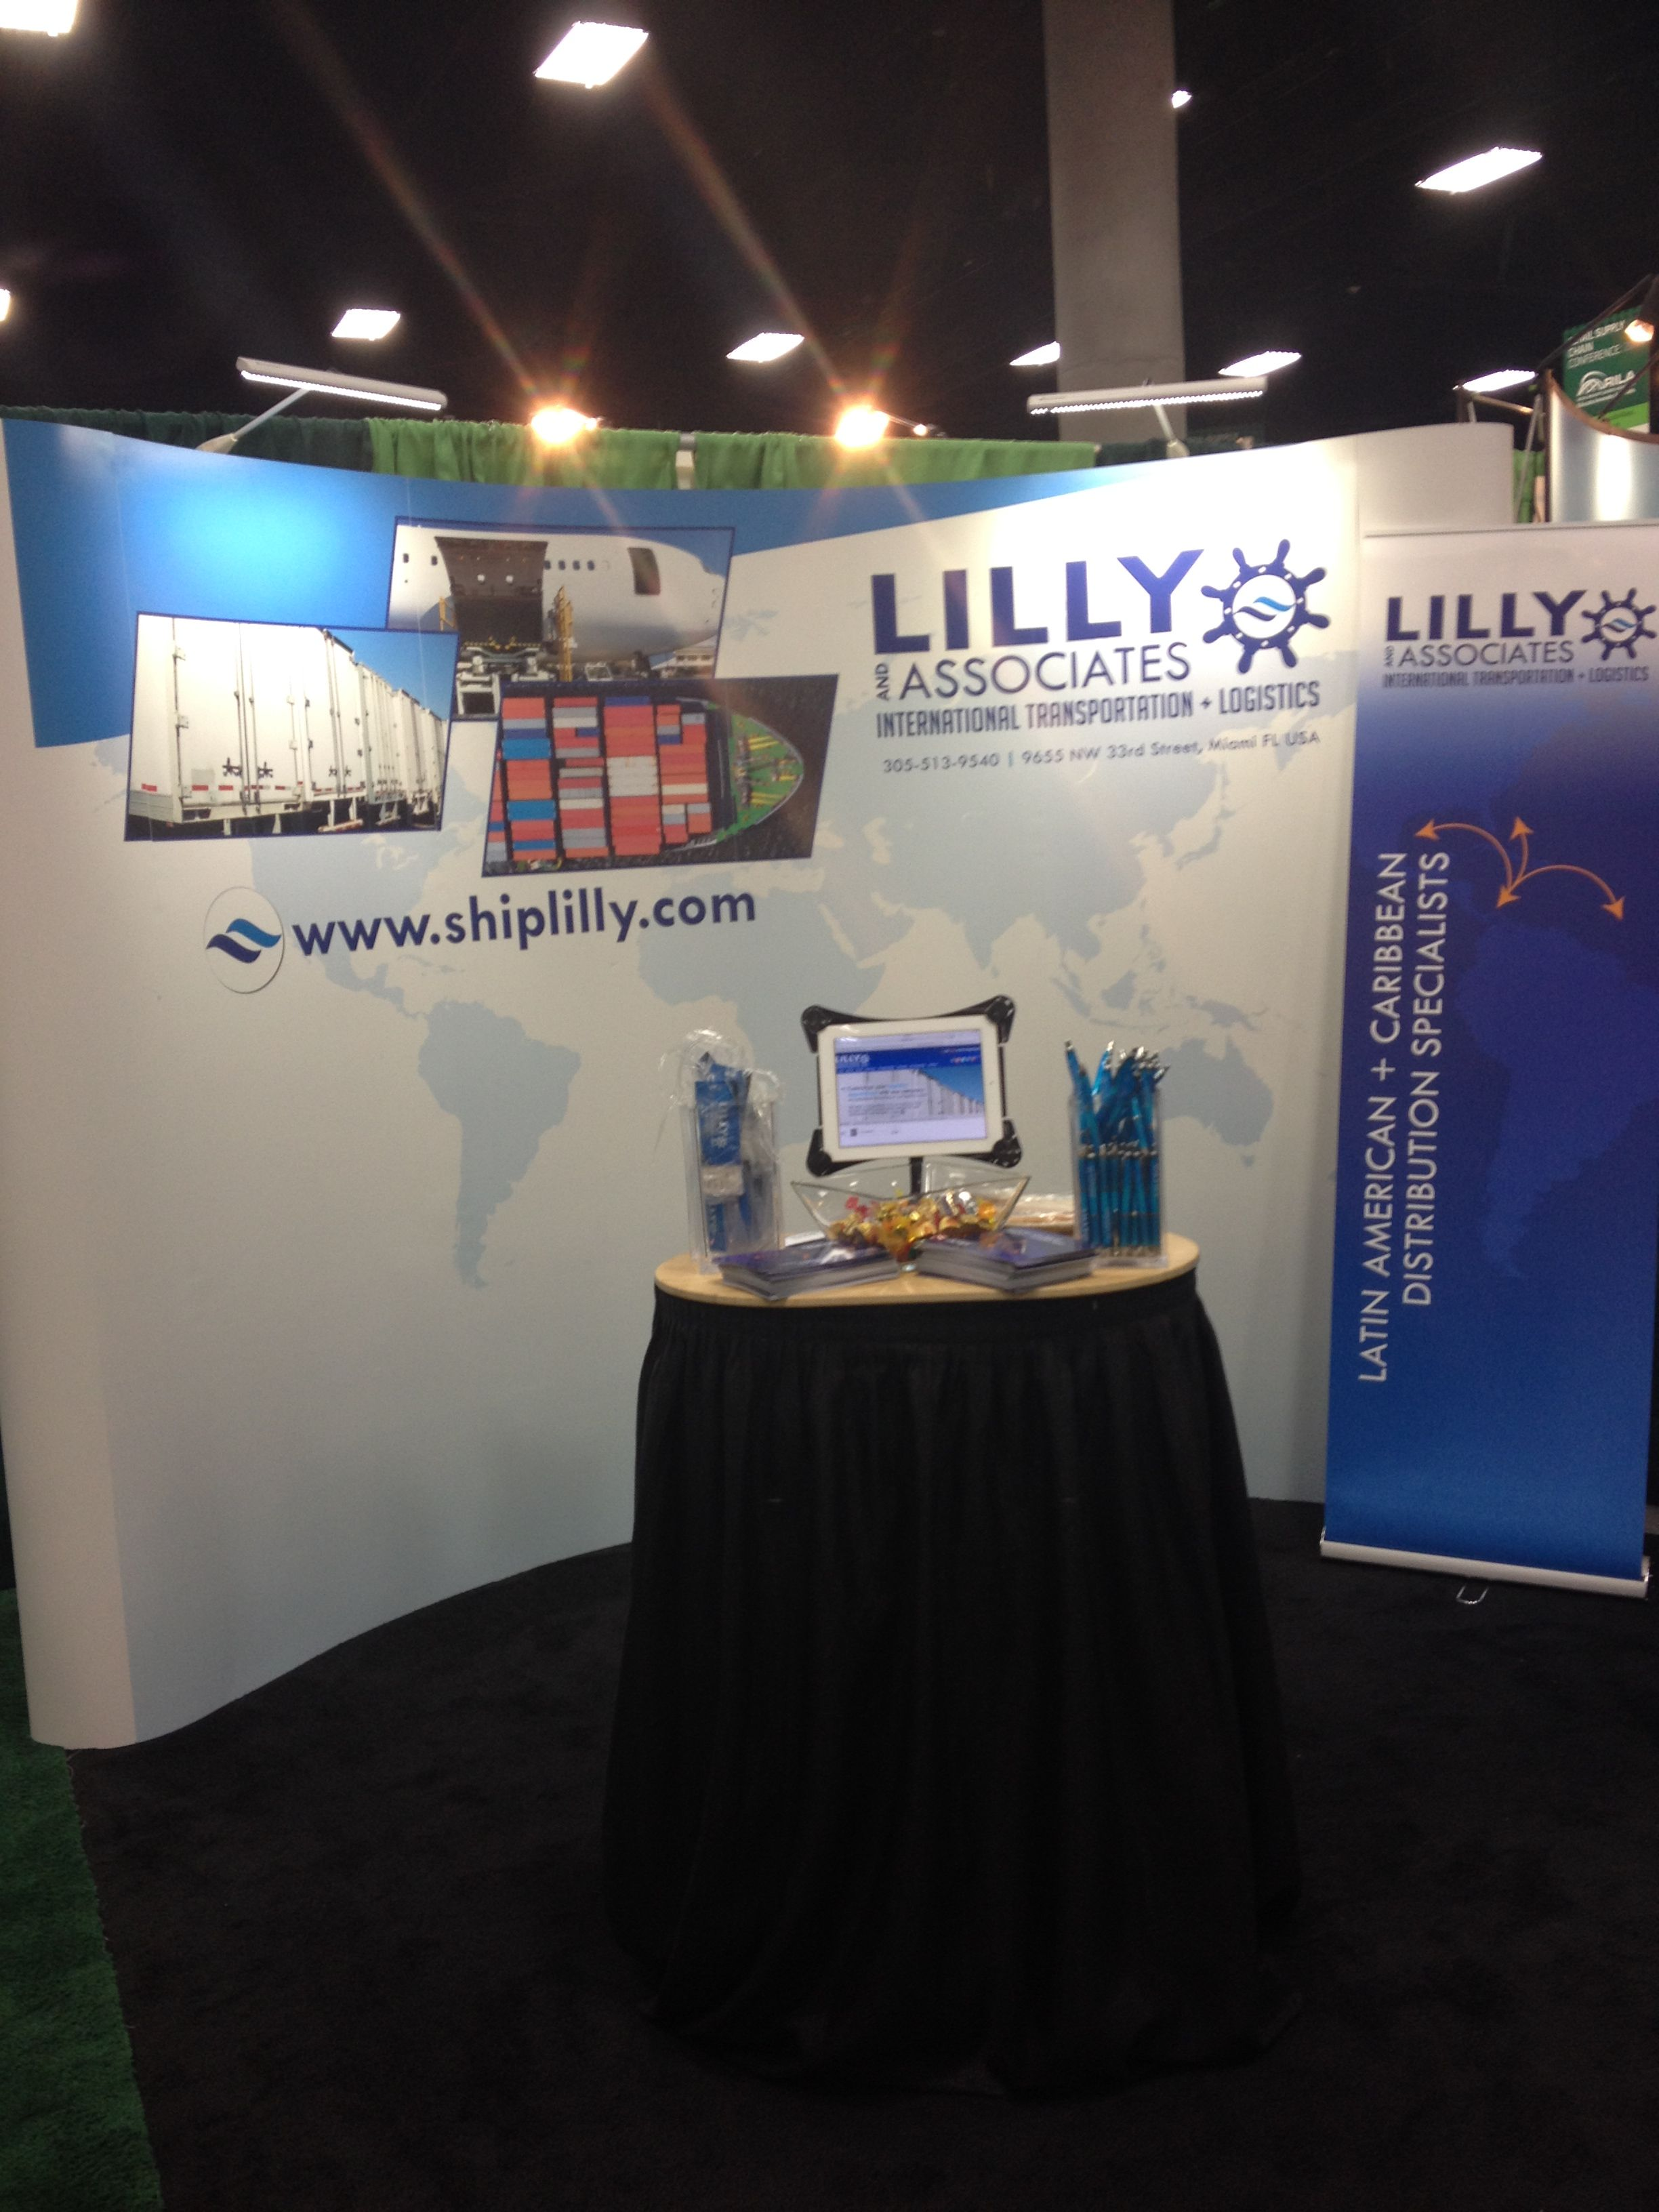 LILLY + Associates International at the Retail Industry Leaders Association Supply Chain 2014 conference in San Diego. #tradeshow #tradeshowbooth